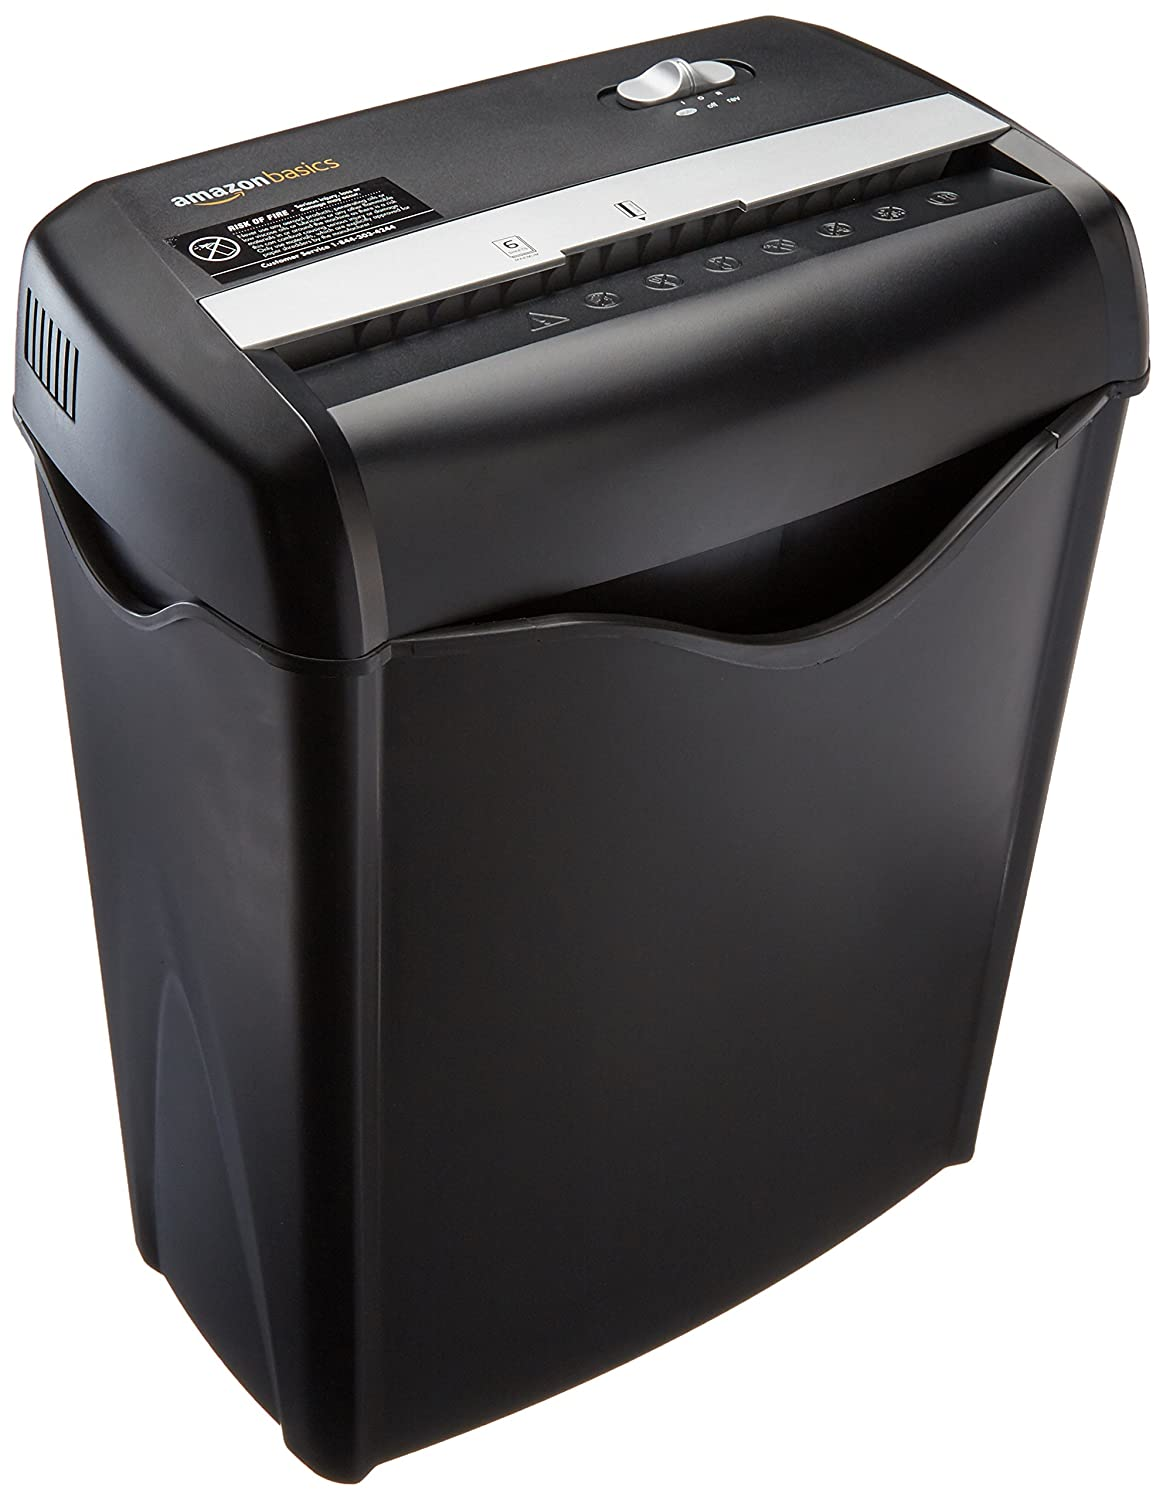 The Best Paper Shredder Reviews - Expert Recommendation & Buying Guide 4